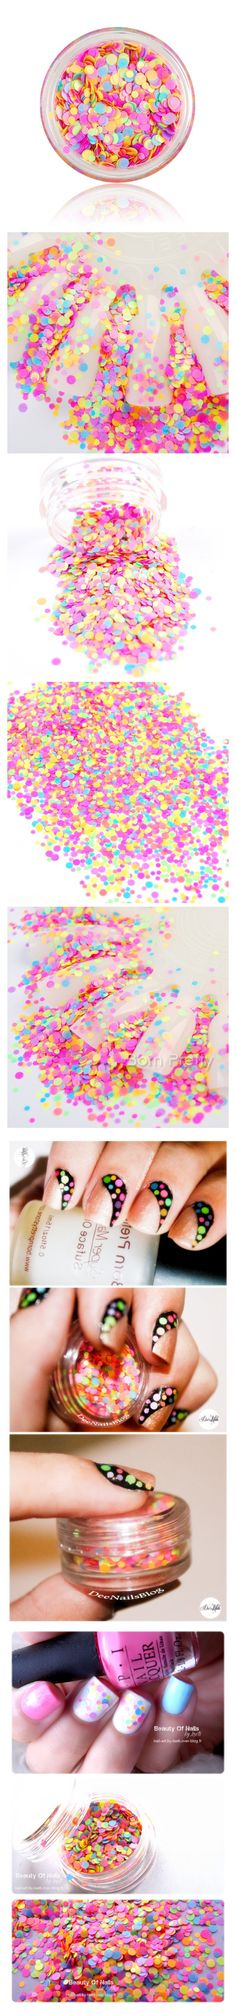 I find an excellent product on @BornPrettyStore, 1mm-2mm Mixed Nail Art Glitter Decoration Col... at $4.36. http://www.bornprettystore.com/-p-15085.html